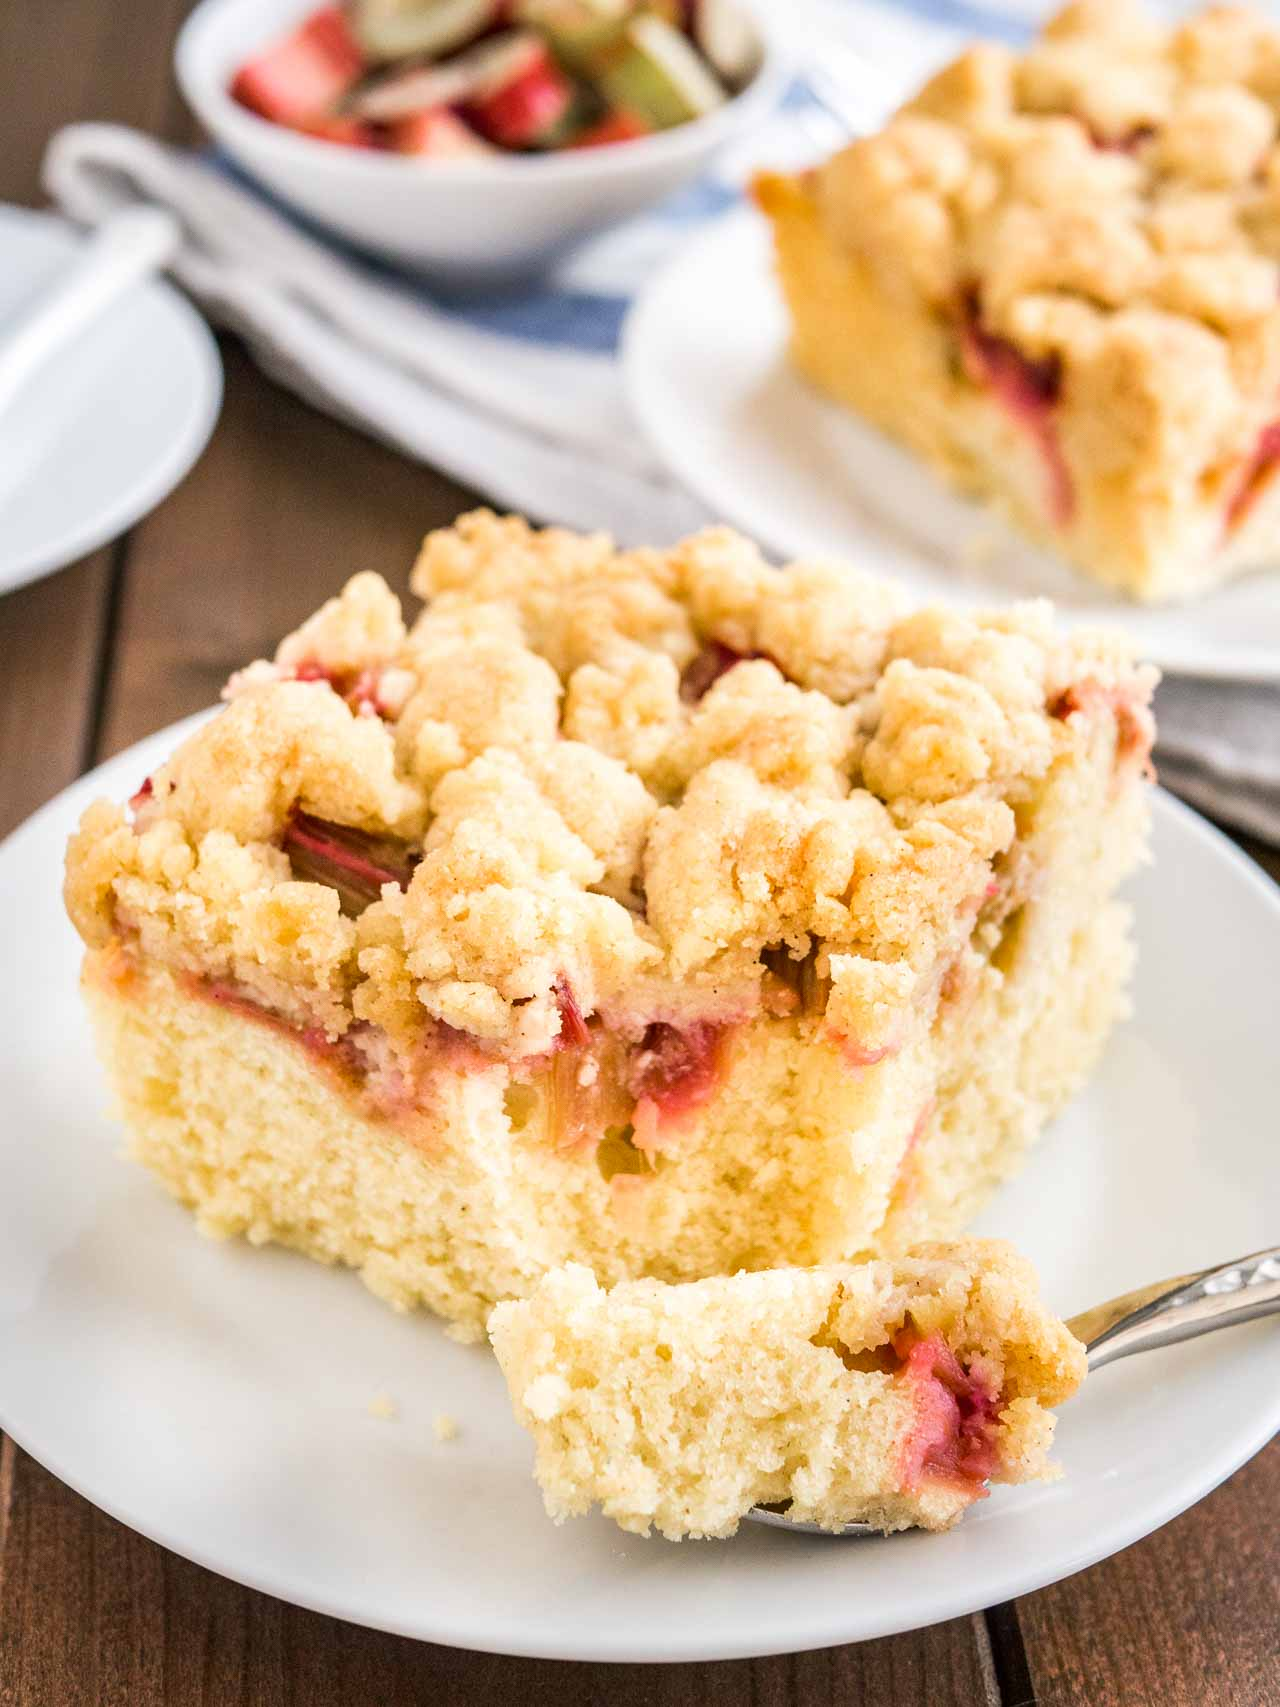 Rhubarb Coffee Cake is topped with cookie-like streusel and every bite is studded with juicy rhubarb! An easy-to-make sheet cake that's not too sweet and not too tangy, just delicious.